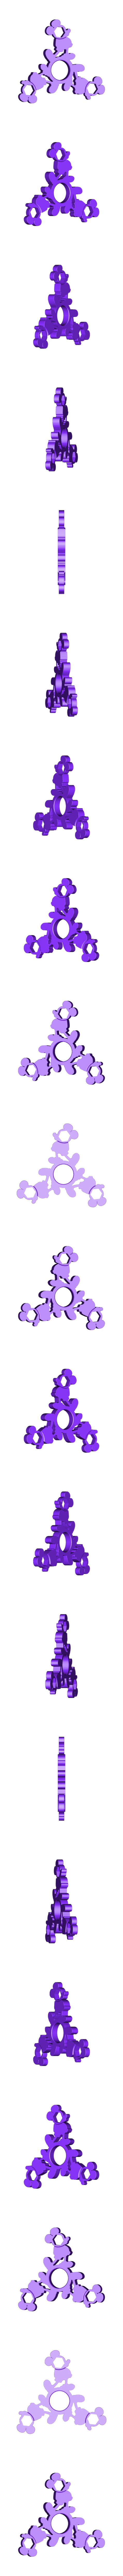 hand mickey.stl Download free STL file Mickey-Spinner • 3D print template, BOUVERAT3DPrint